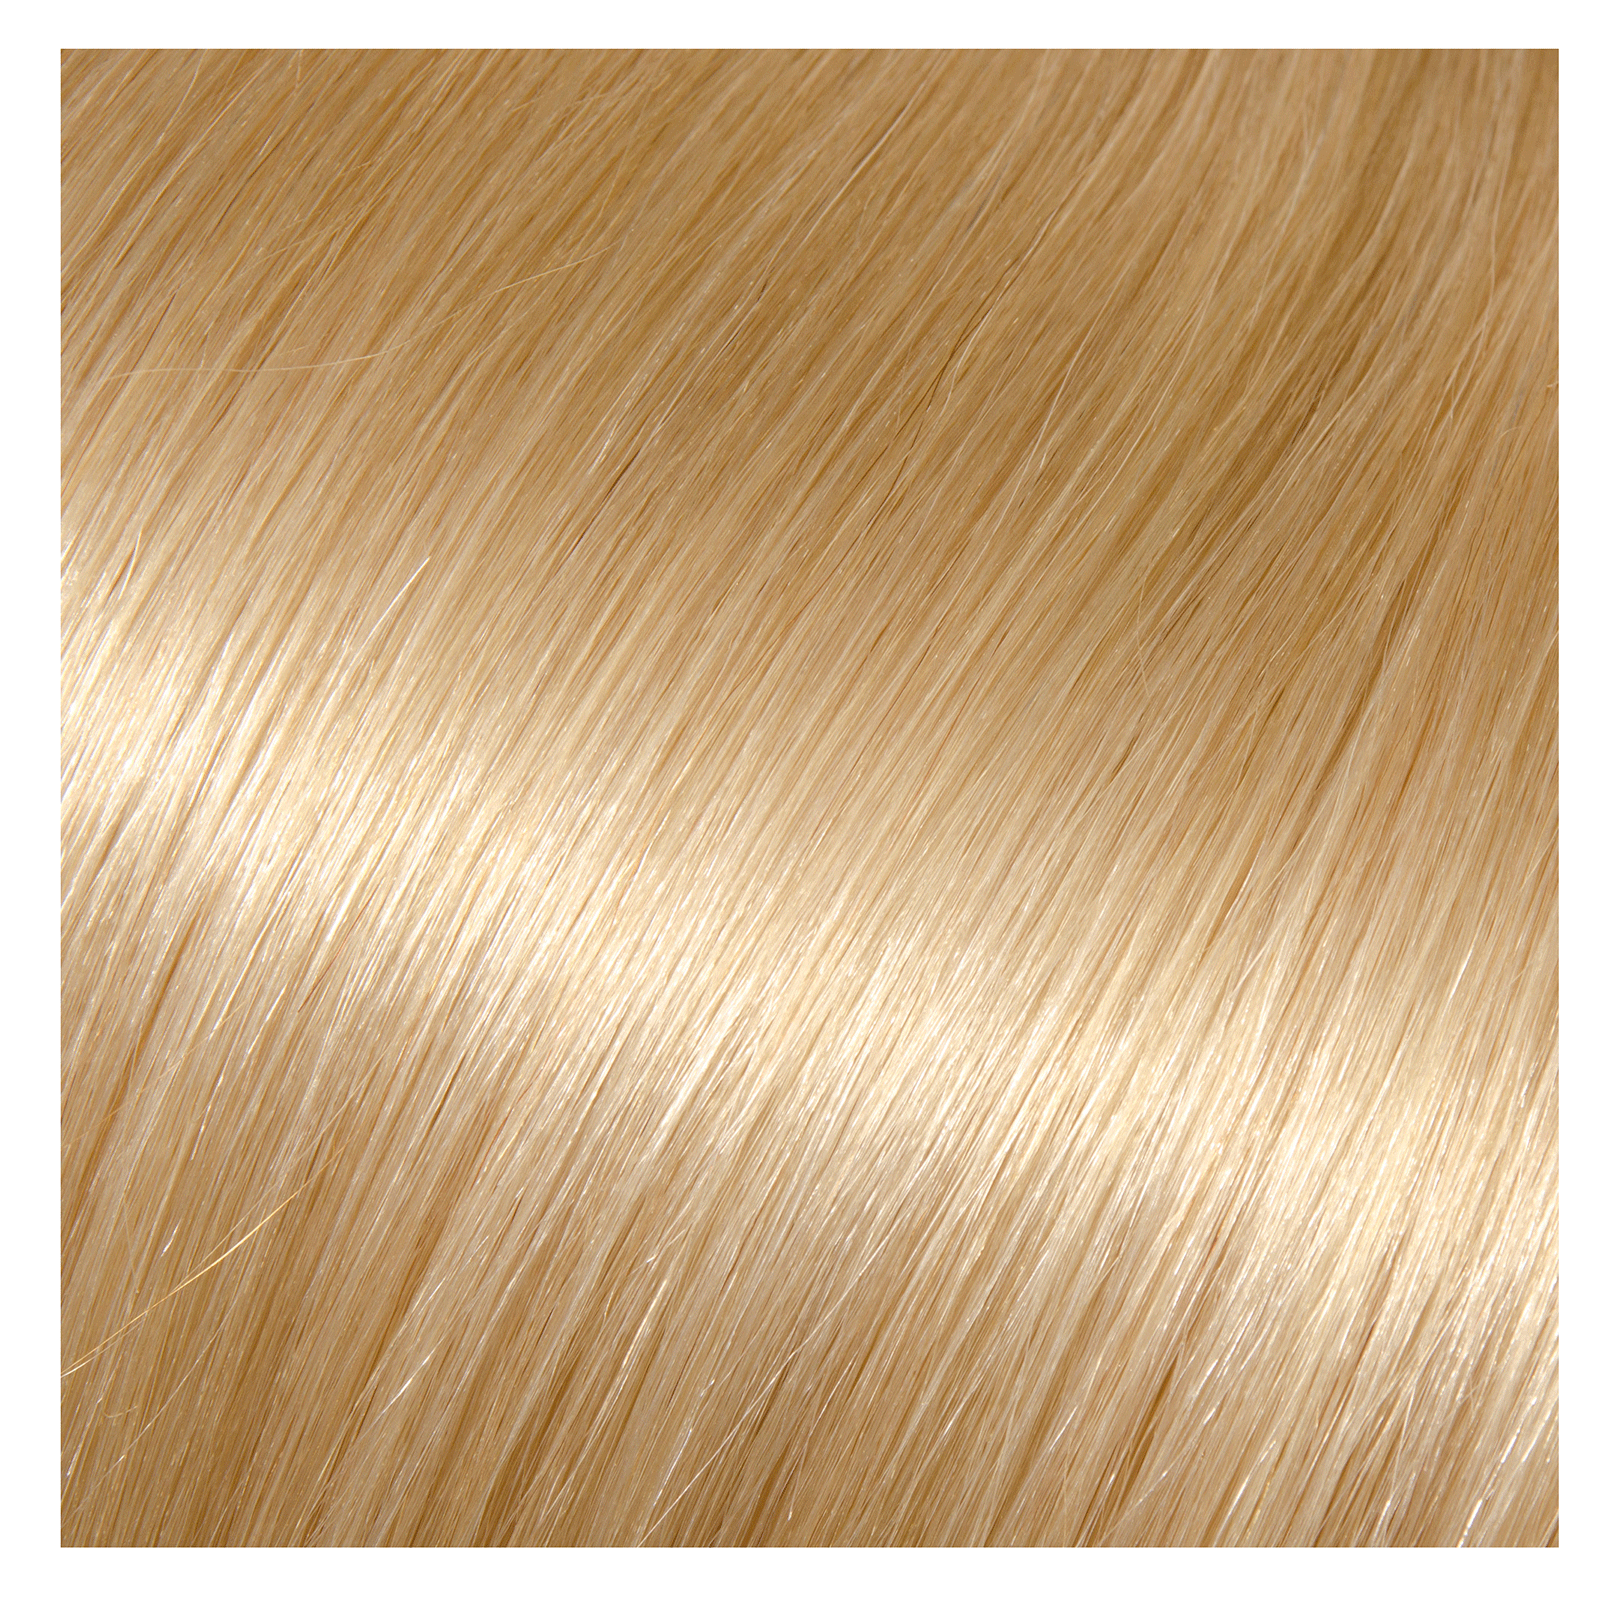 Tape In Pro Hair Extension 18 Inch 1001 Yvonne Babe Hair